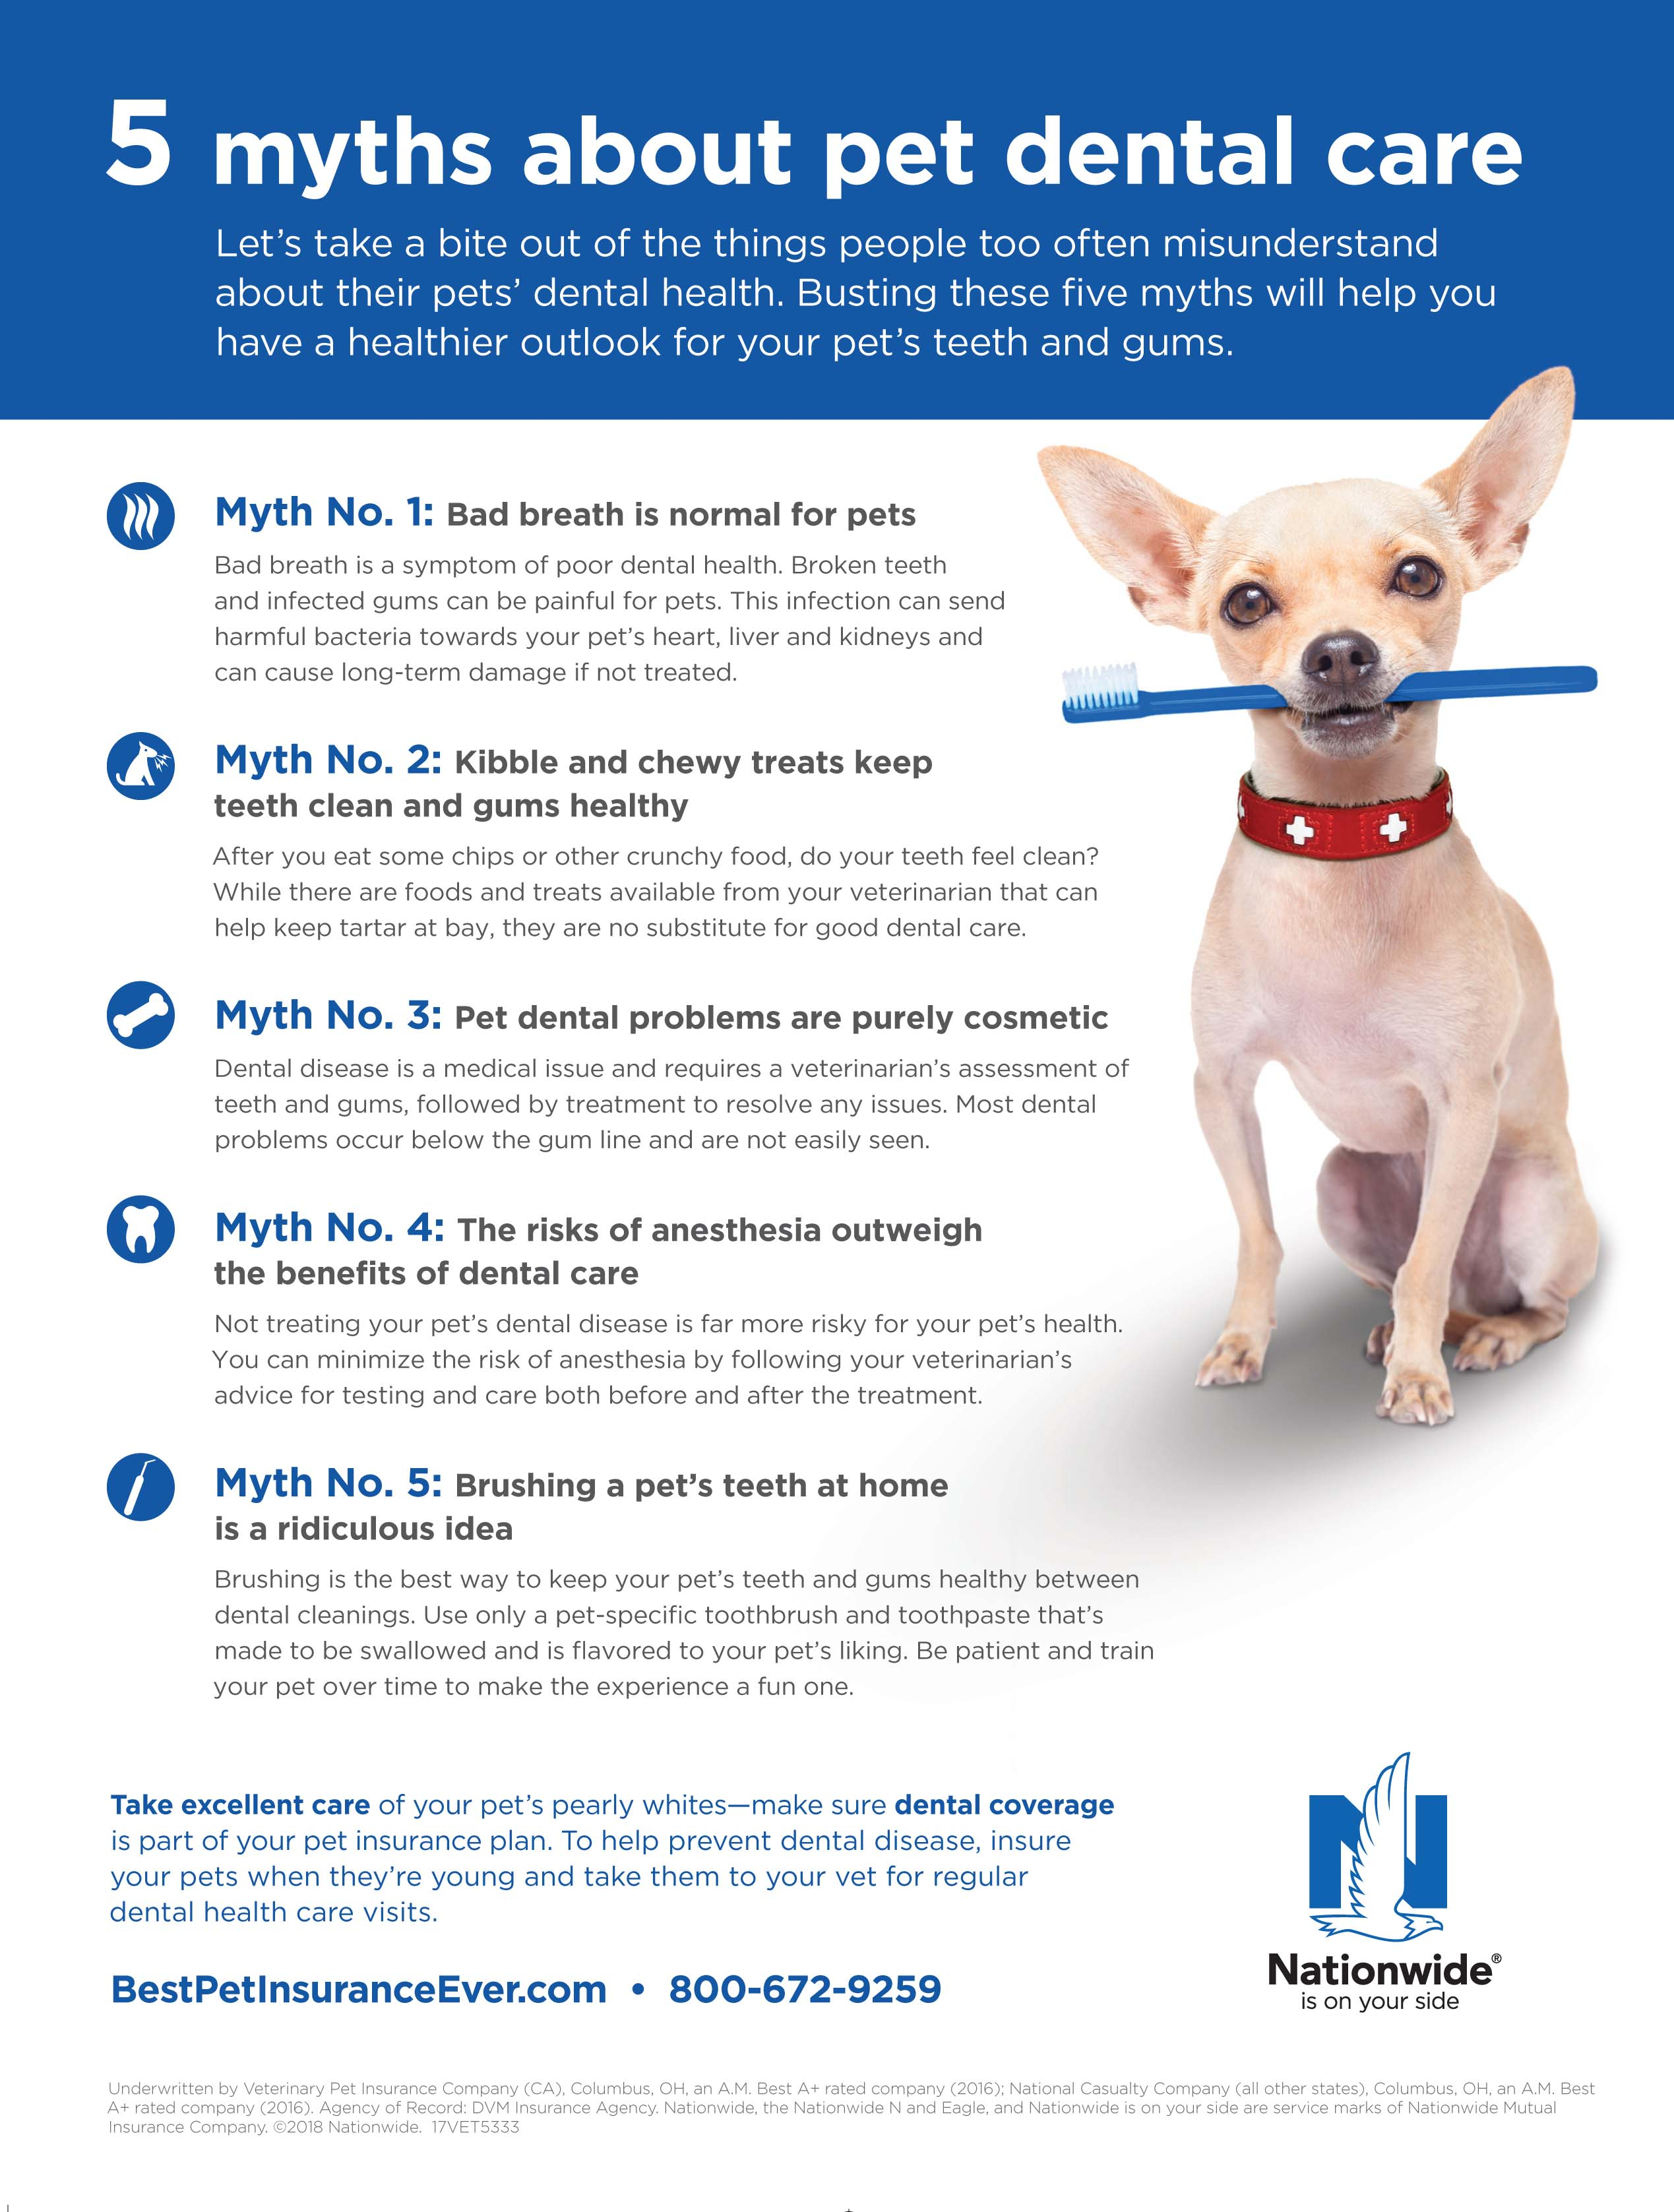 5 myths about pet dental care